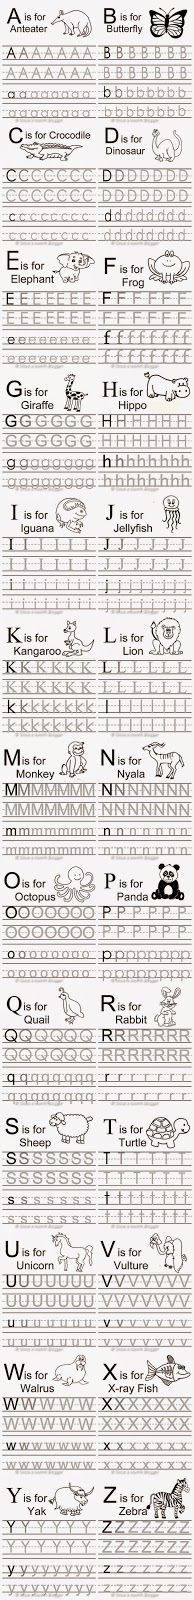 Free Animal Alphabet Traceable Letters More Preschool Kindergarten, Preschool Worksheets, Preschool Learning, Preschool Activities, Preschool Homework, Kindergarten Readiness, Preschool Writing, Tracing Worksheets, Alphabet Worksheets